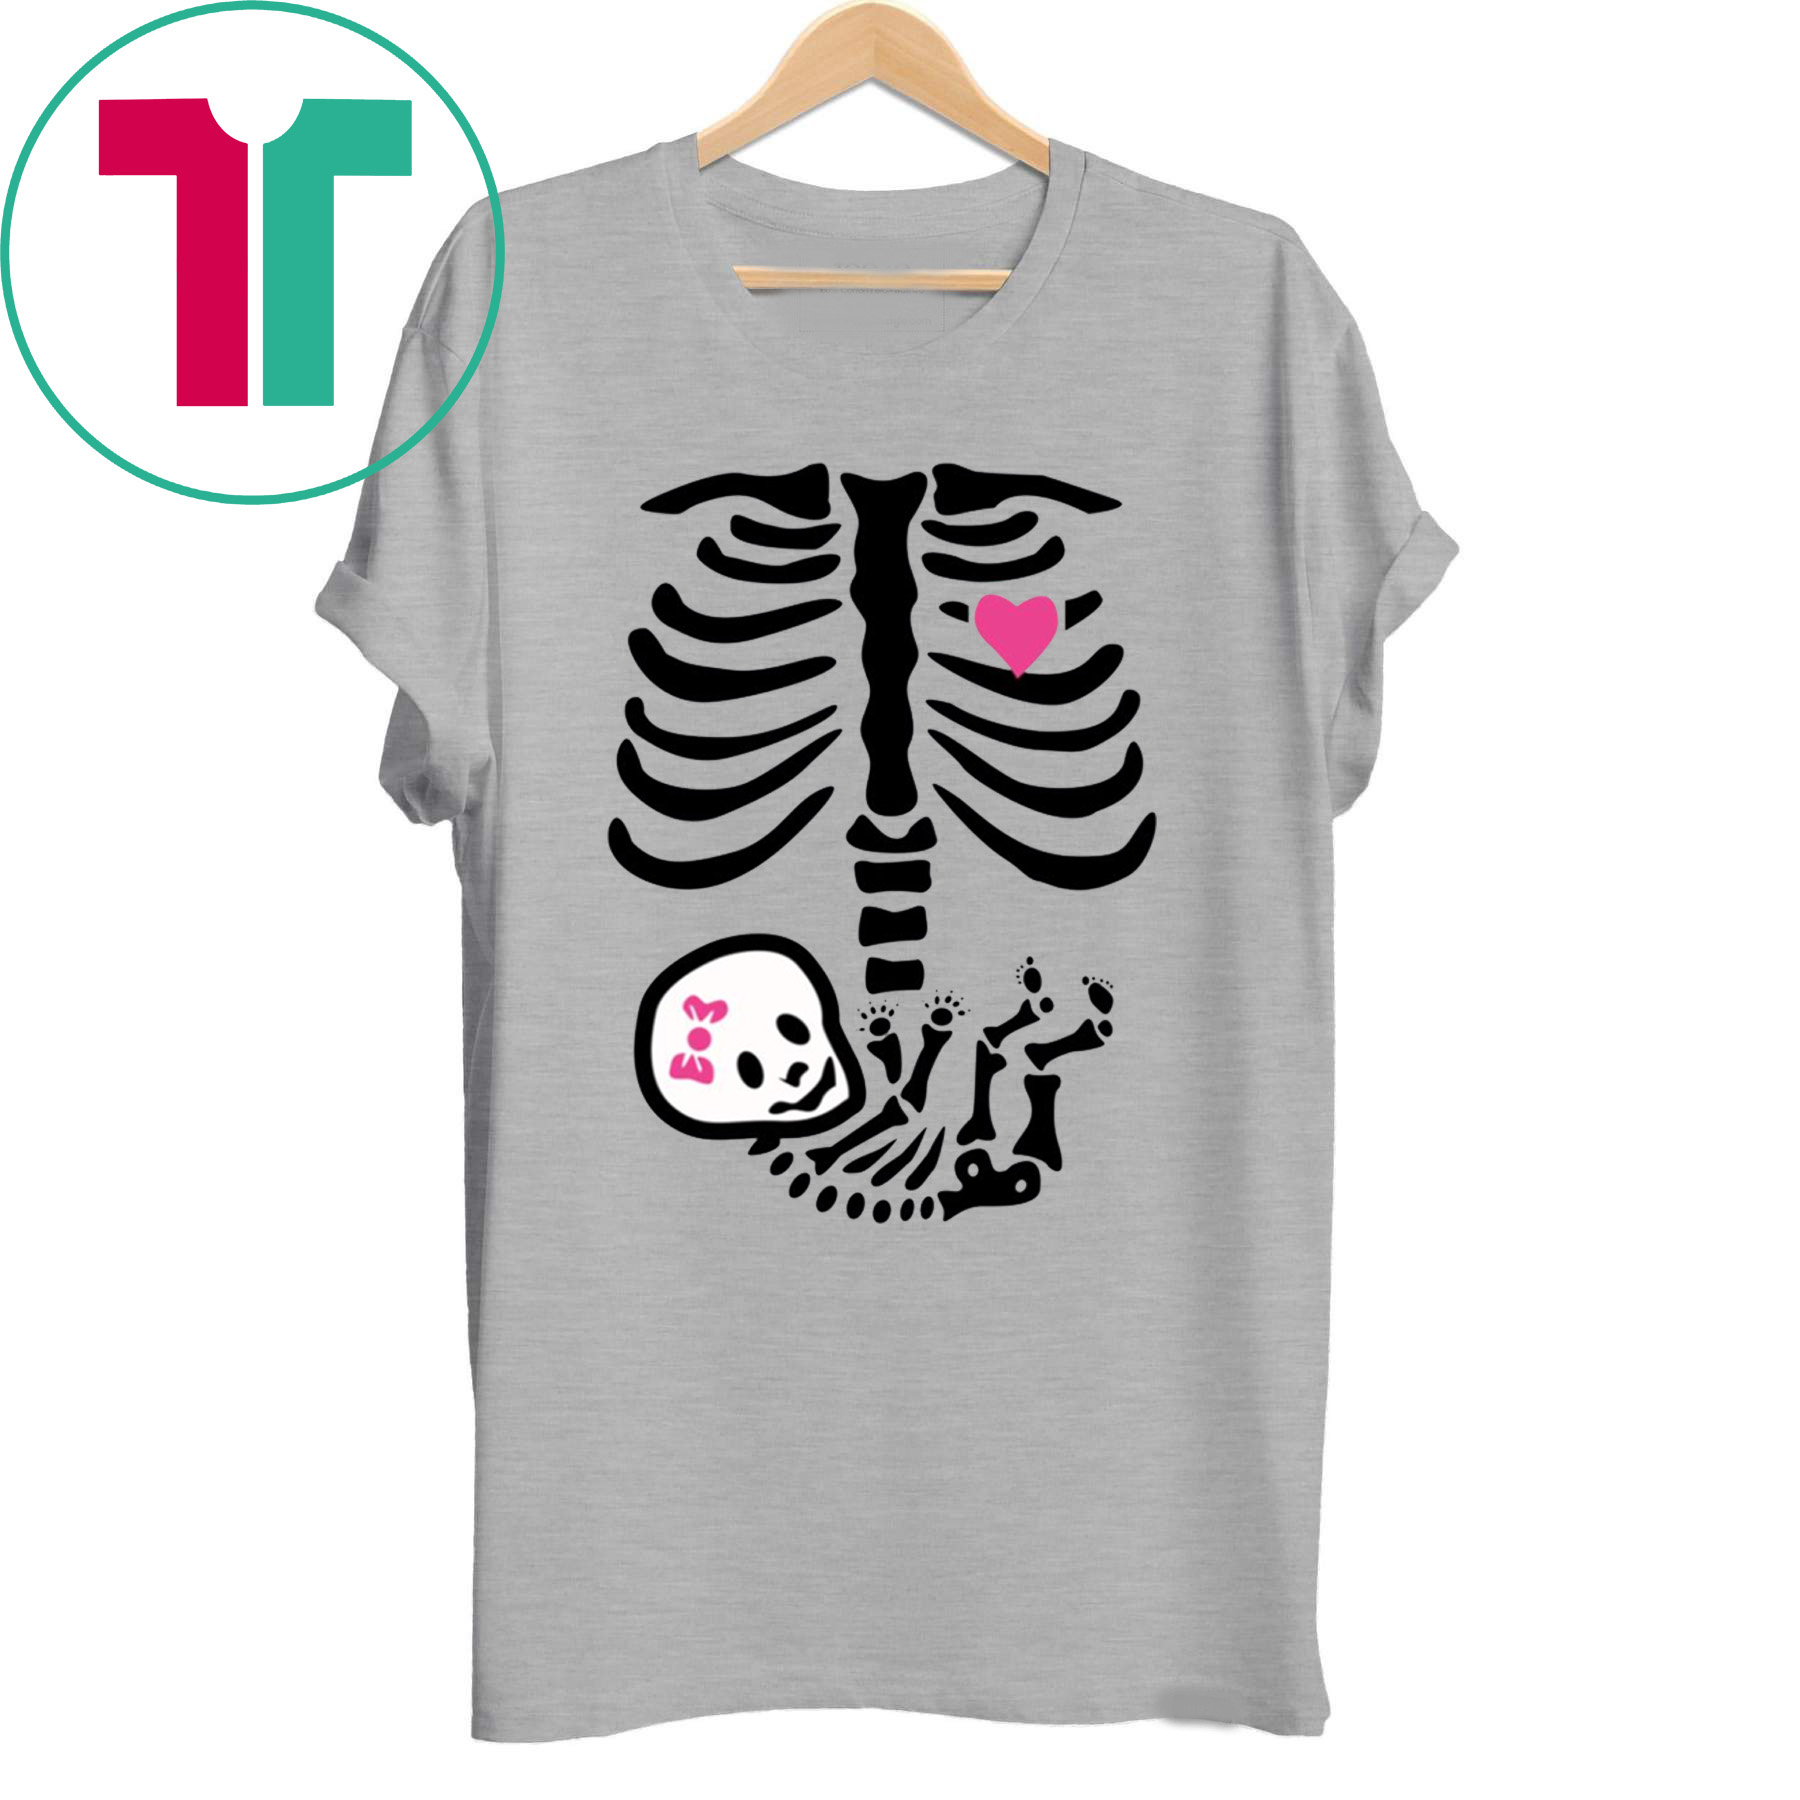 Halloween Pregnancy T Shirt.Baby Girl Skeleton Halloween Pregnancy Shirt Reviewshirts Office